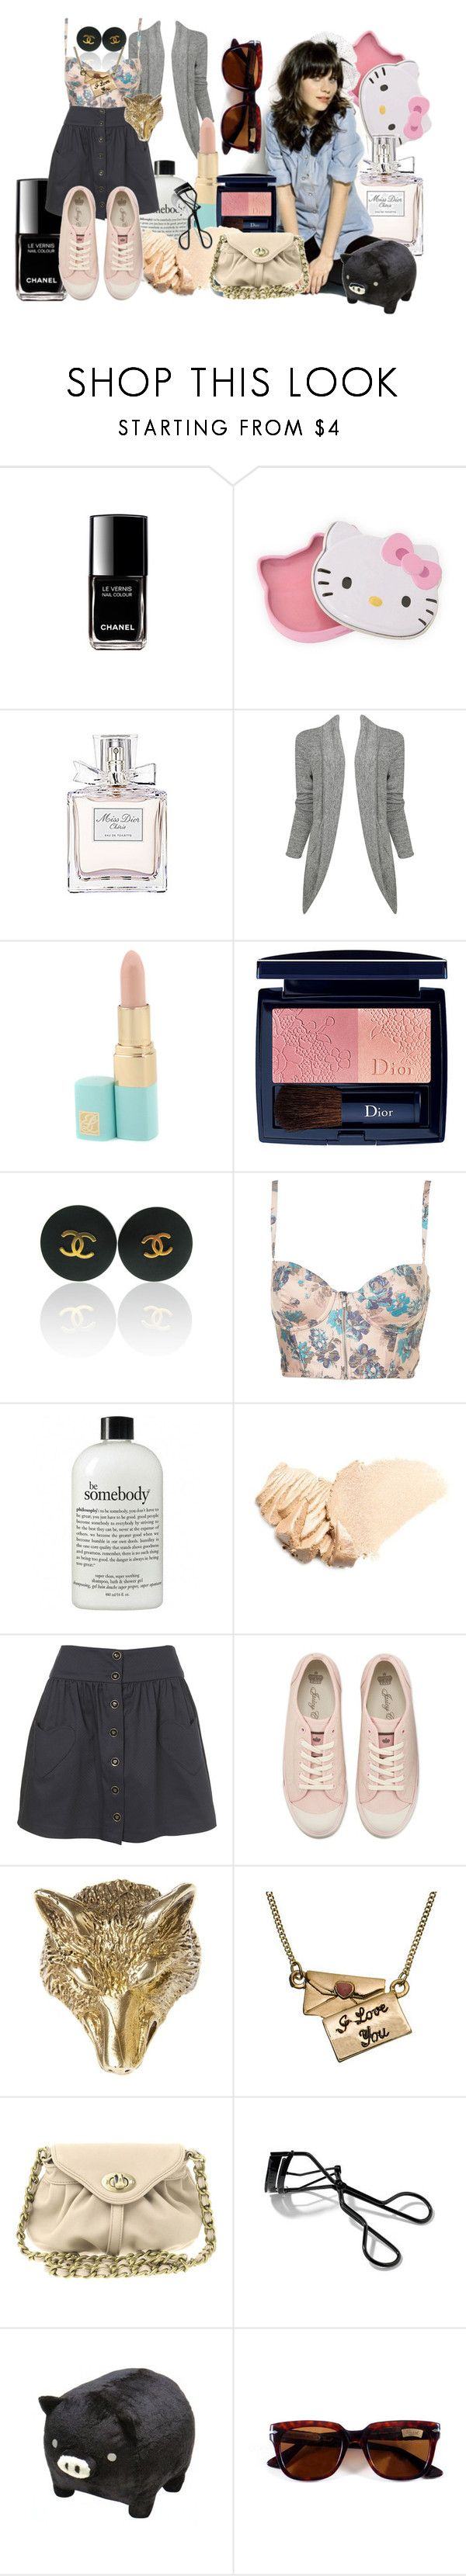 """Remember December"" by lauraemma ❤ liked on Polyvore featuring Nordstrom, Hello Kitty, Christian Dior, Forever 21, Zooey, Chanel, philosophy, Benefit, Juicy Couture and Alkemie"